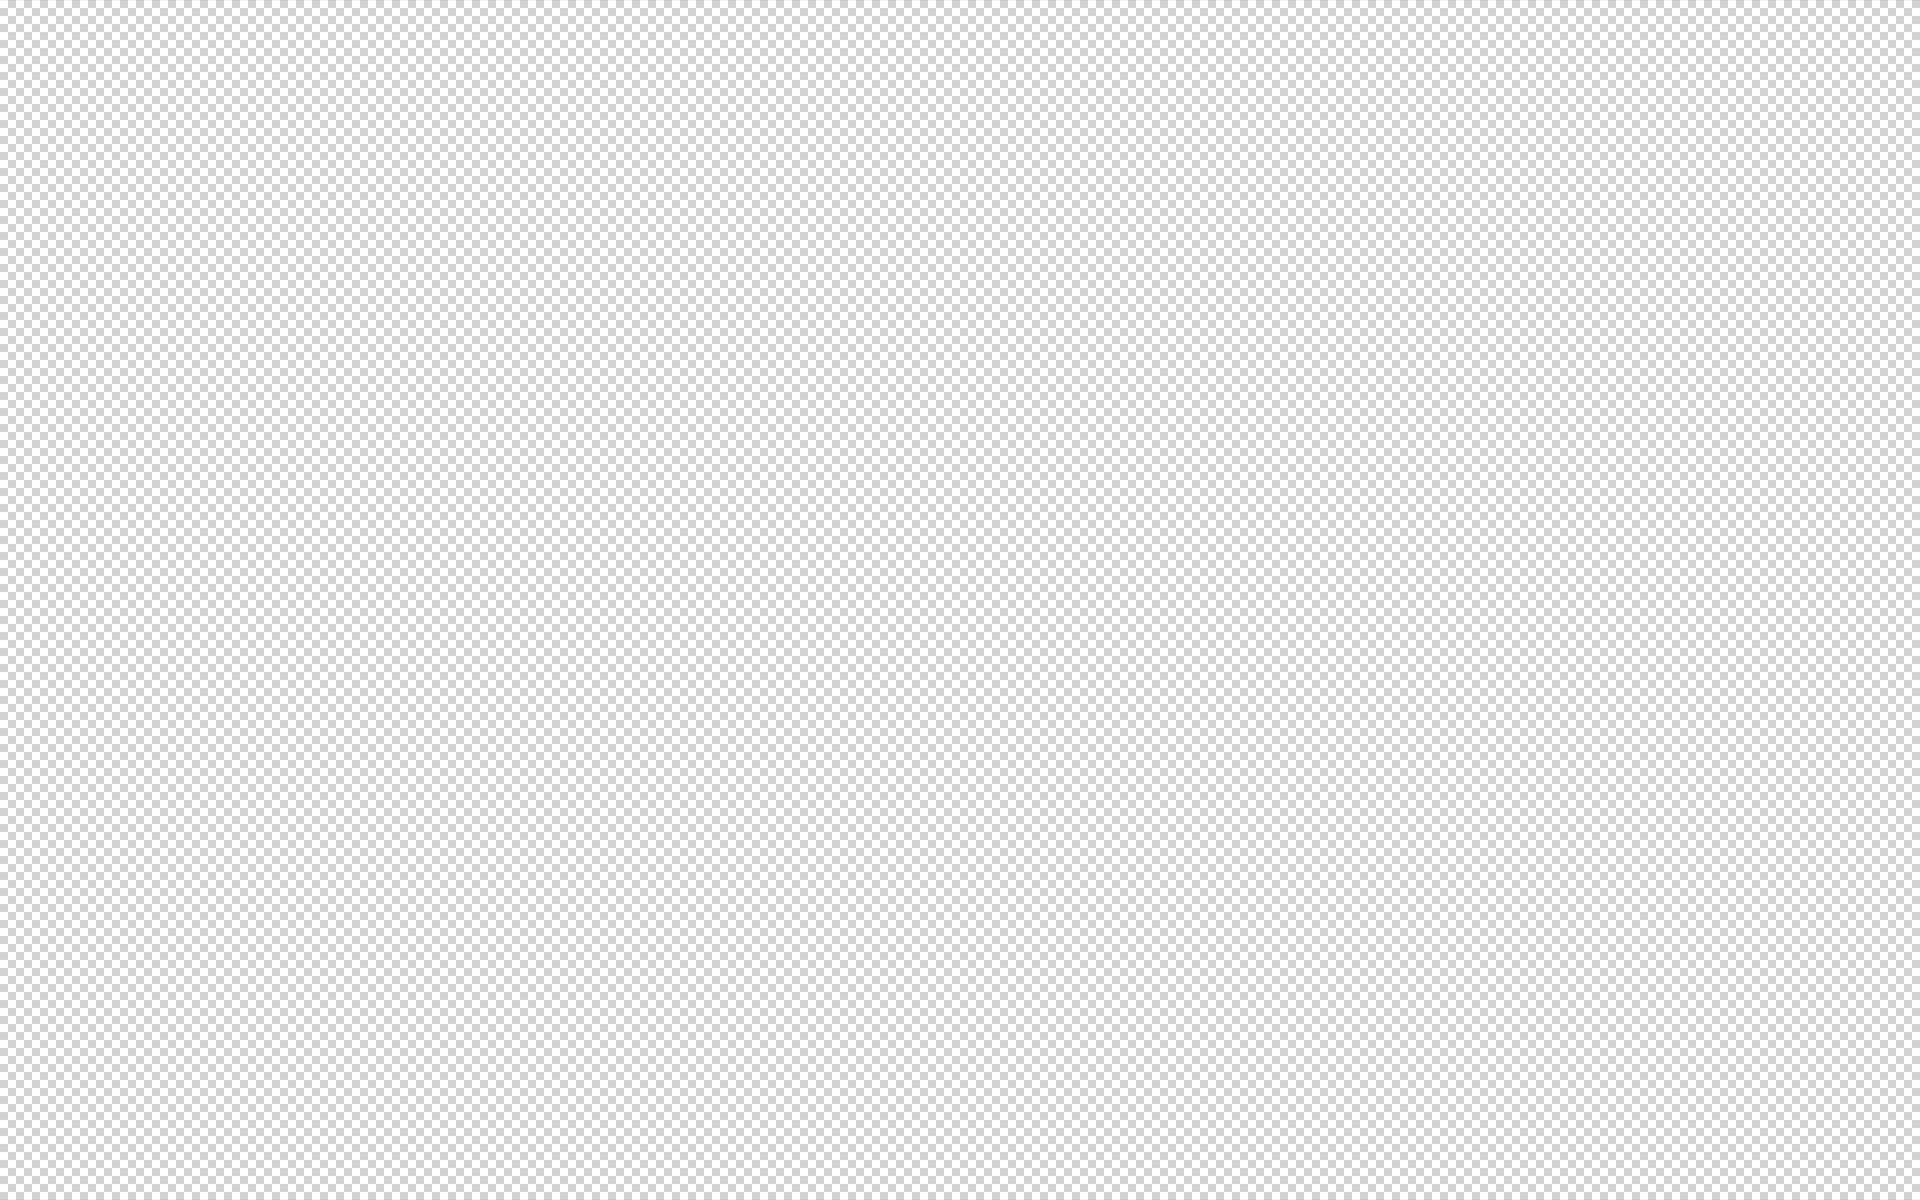 Adobe Photoshop Blank Screen Background